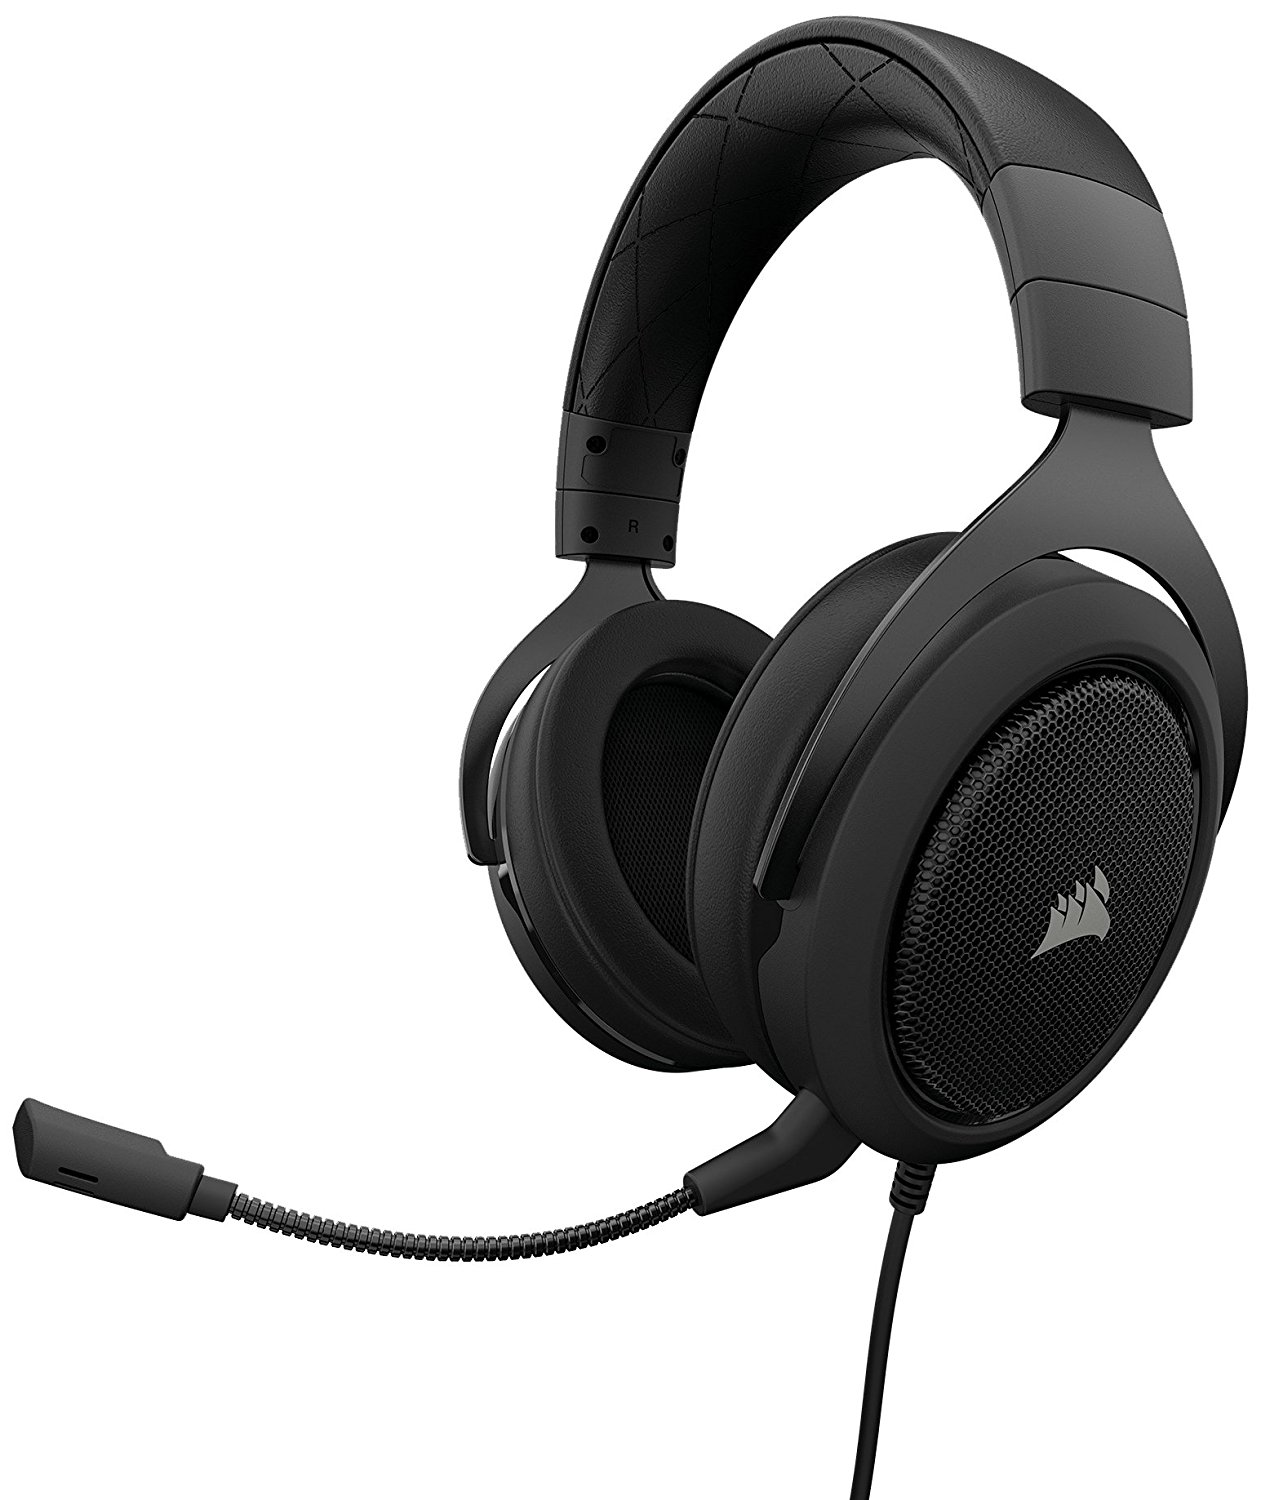 CORSAIR HS50 Stereo Gaming Headset PS4 PC